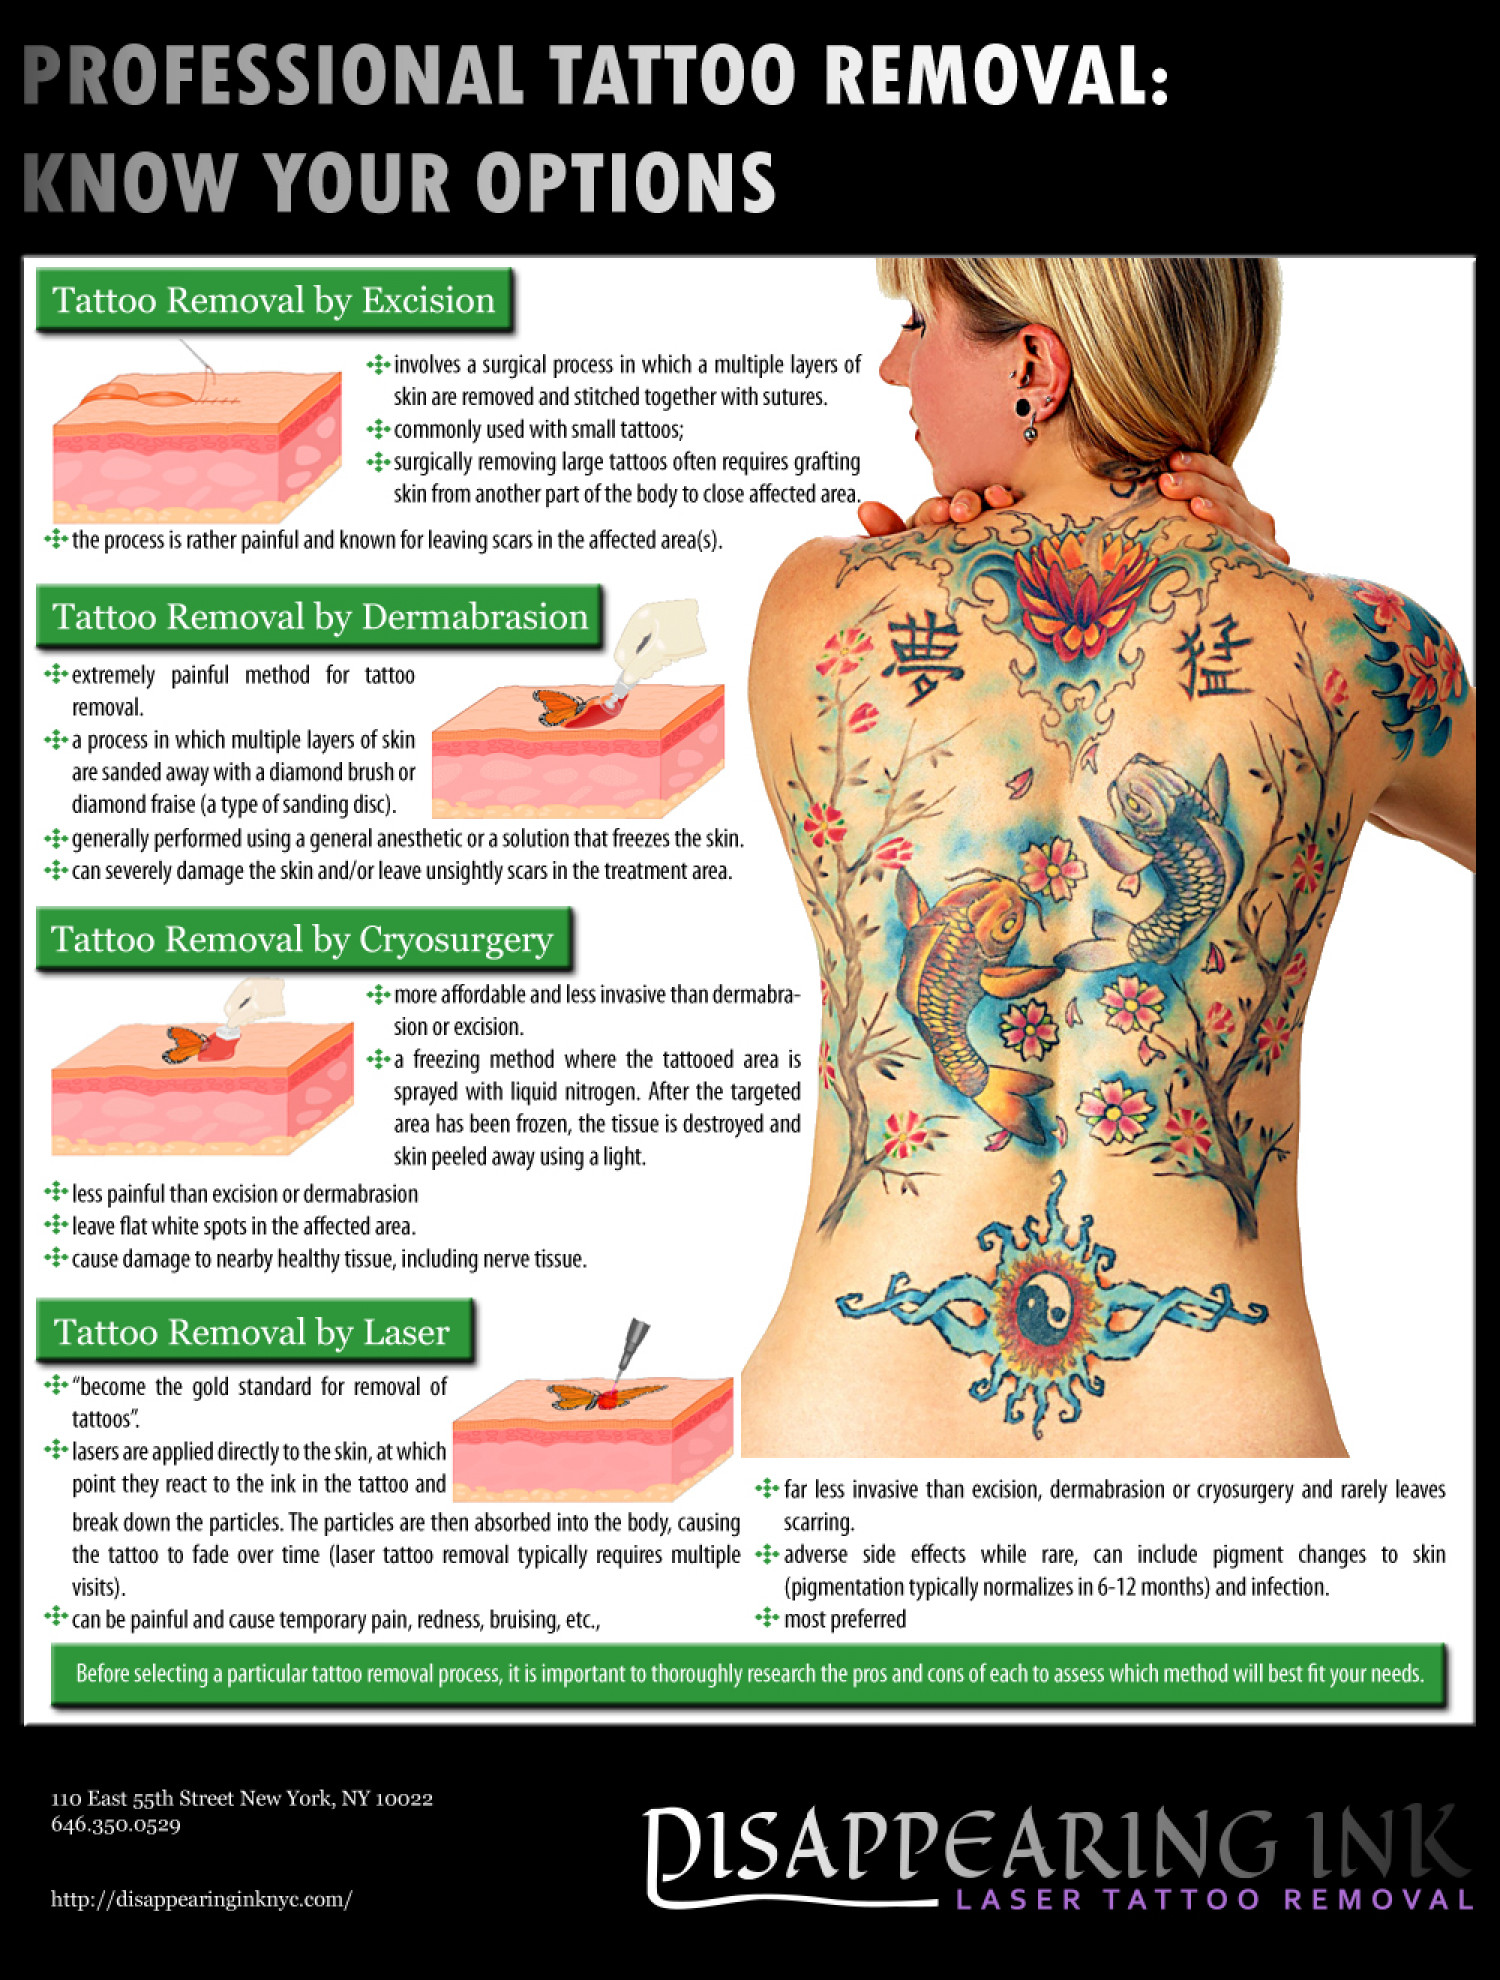 Professional Tattoo Removal Infographic